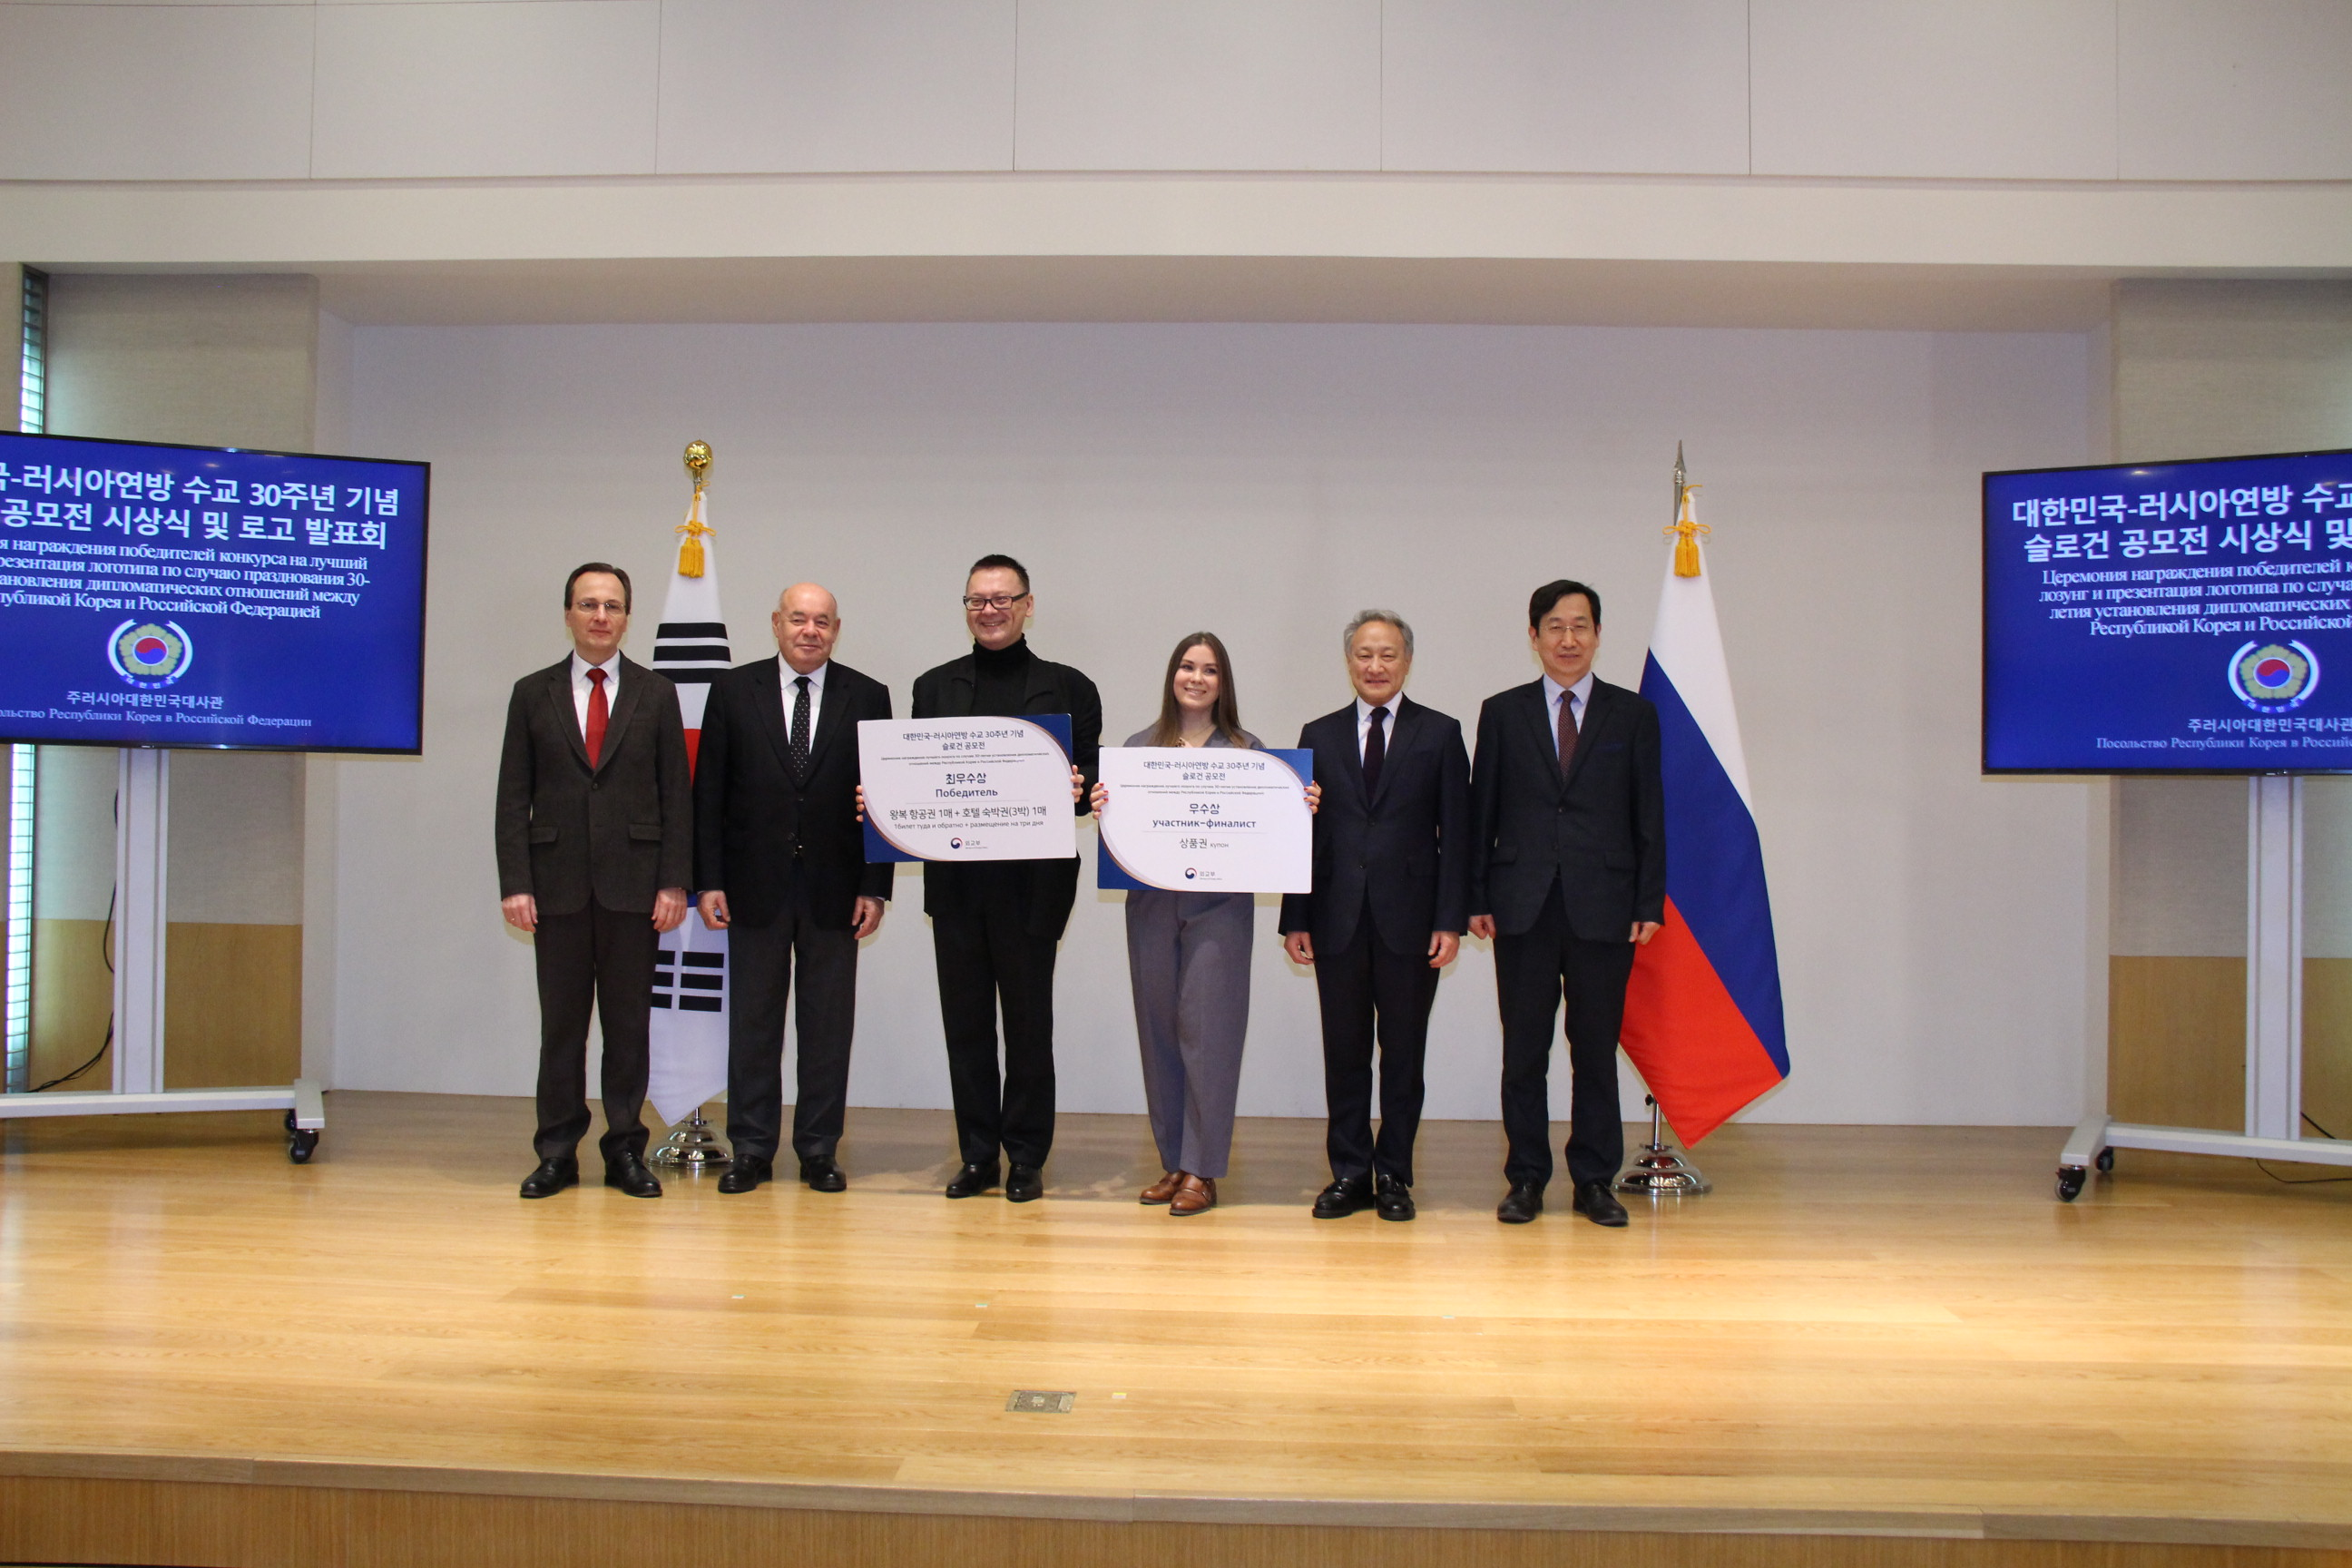 Seoul, Moscow Celebrates 30 Years of Ties at S. Korean Embassy in Russia